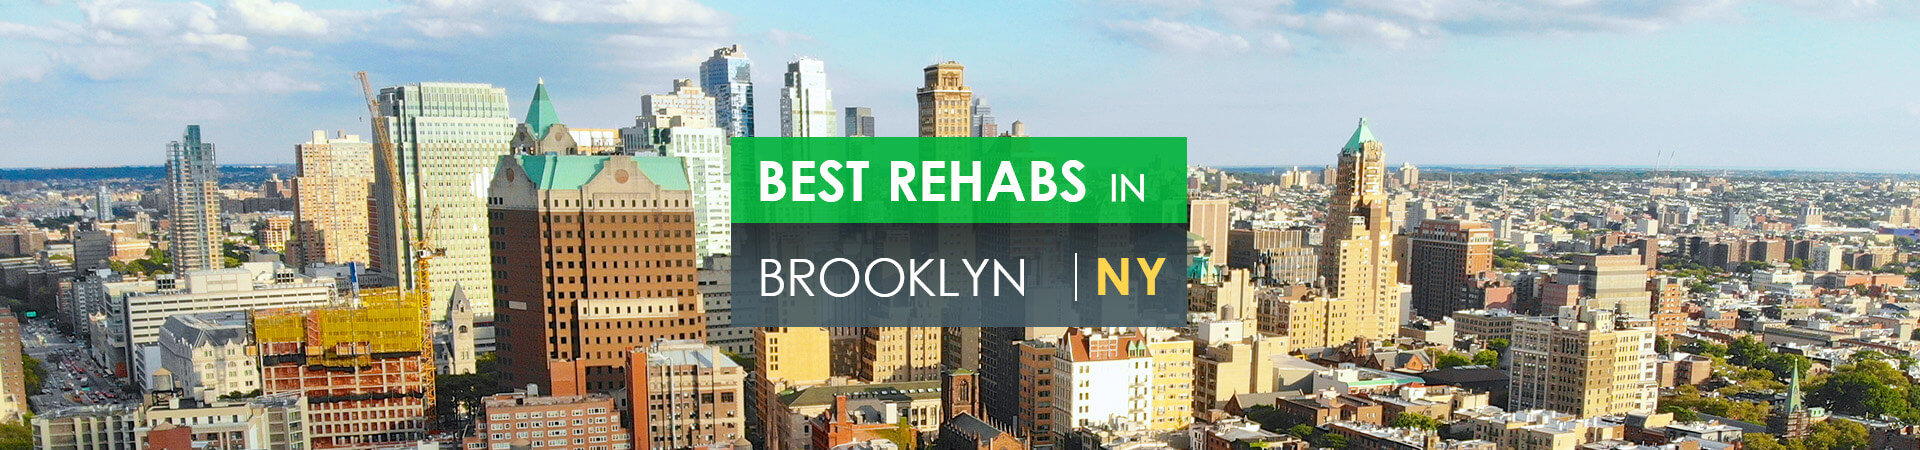 Best rehabs in Brooklyn, NY